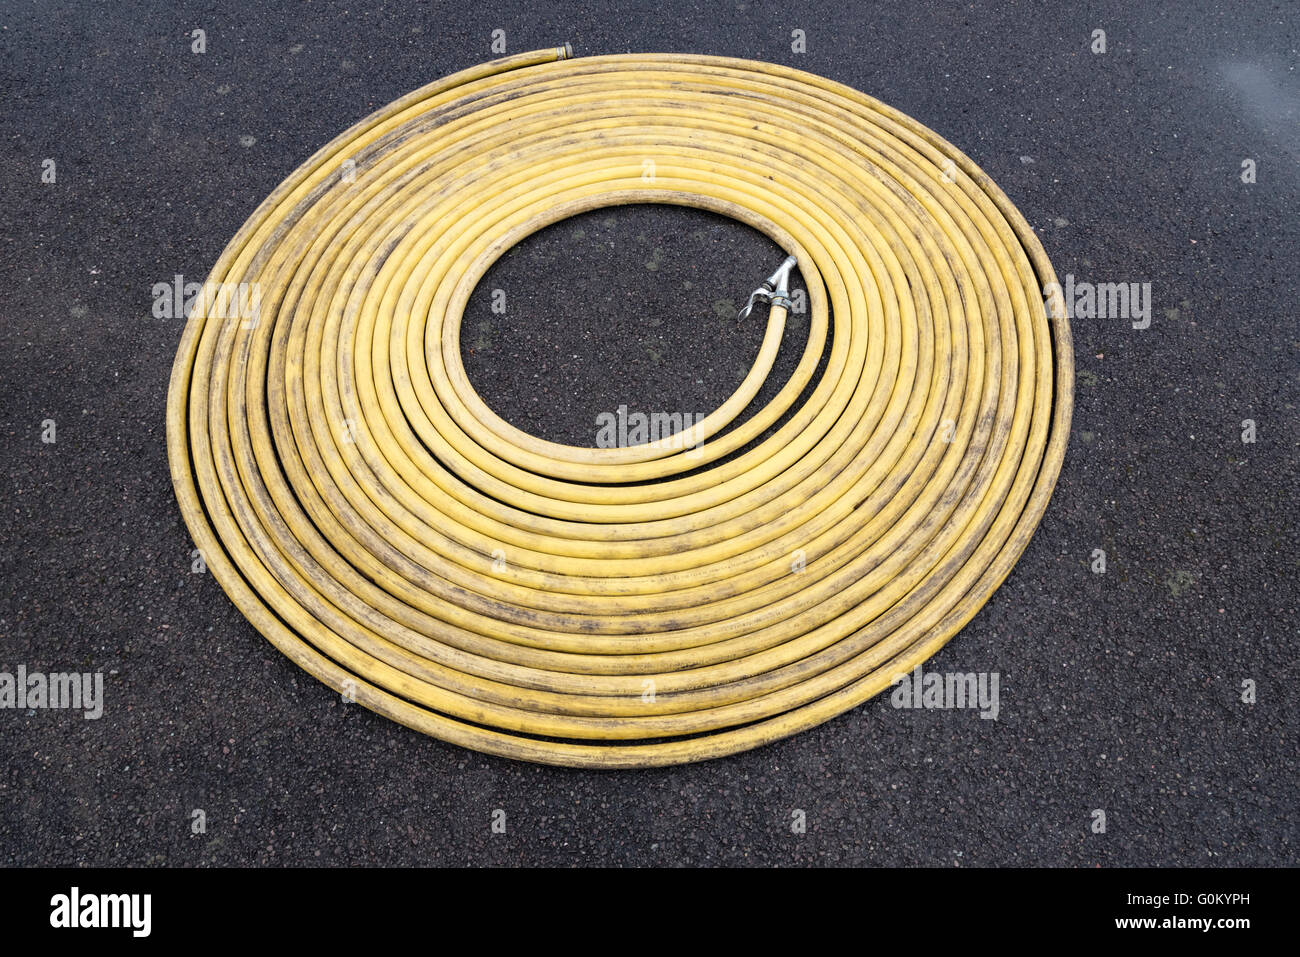 Coil yellow water hose Stock Photo: 103701097 - Alamy